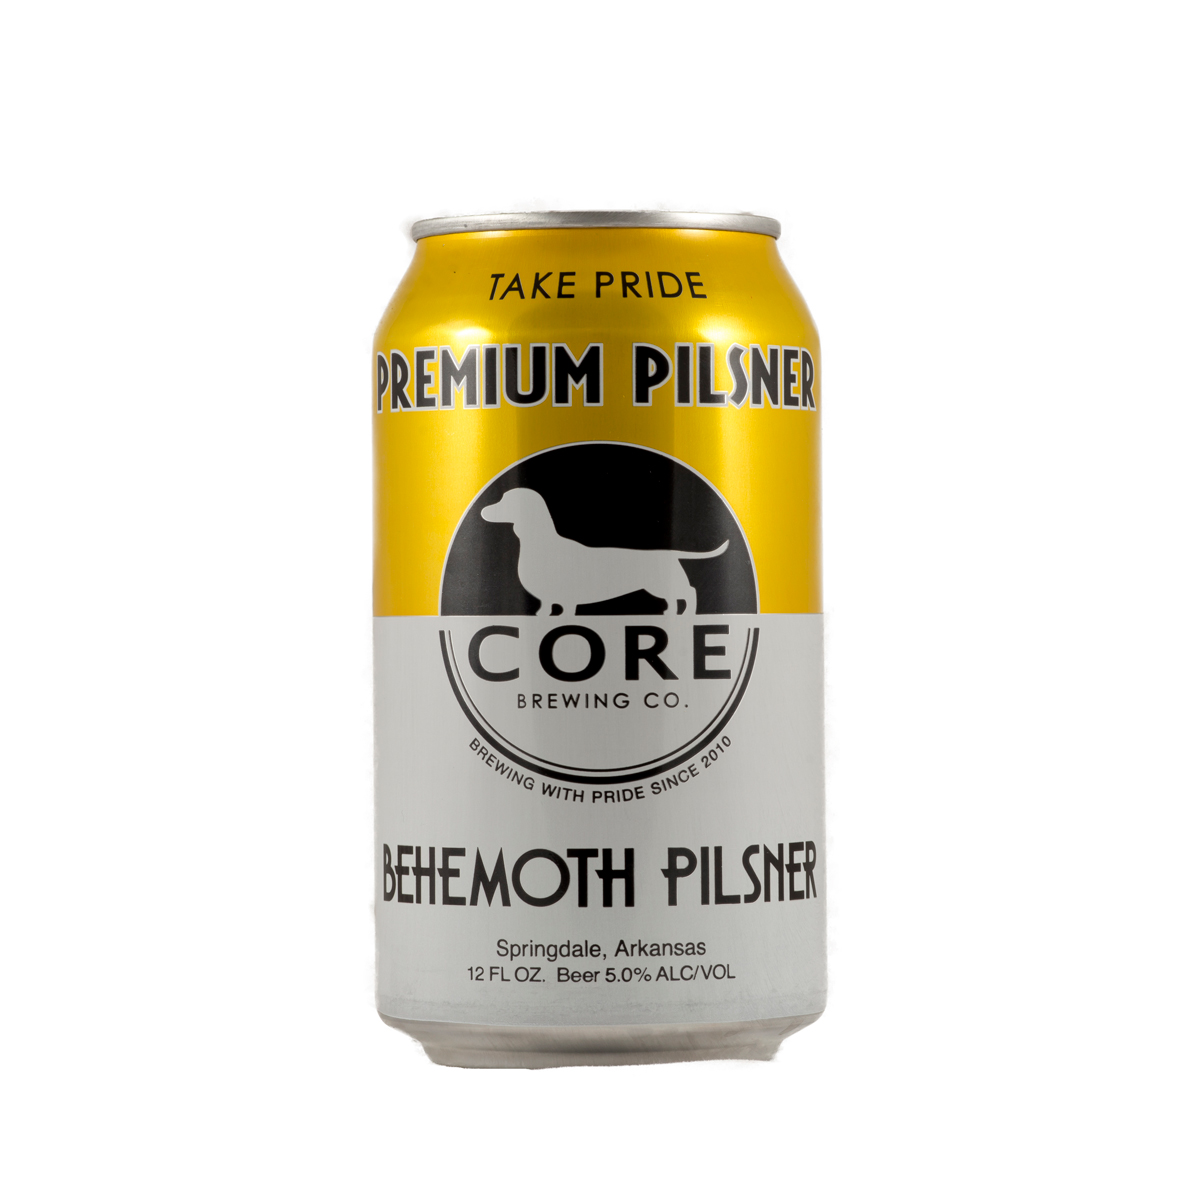 Arkansas: Core Behemoth Pilsner